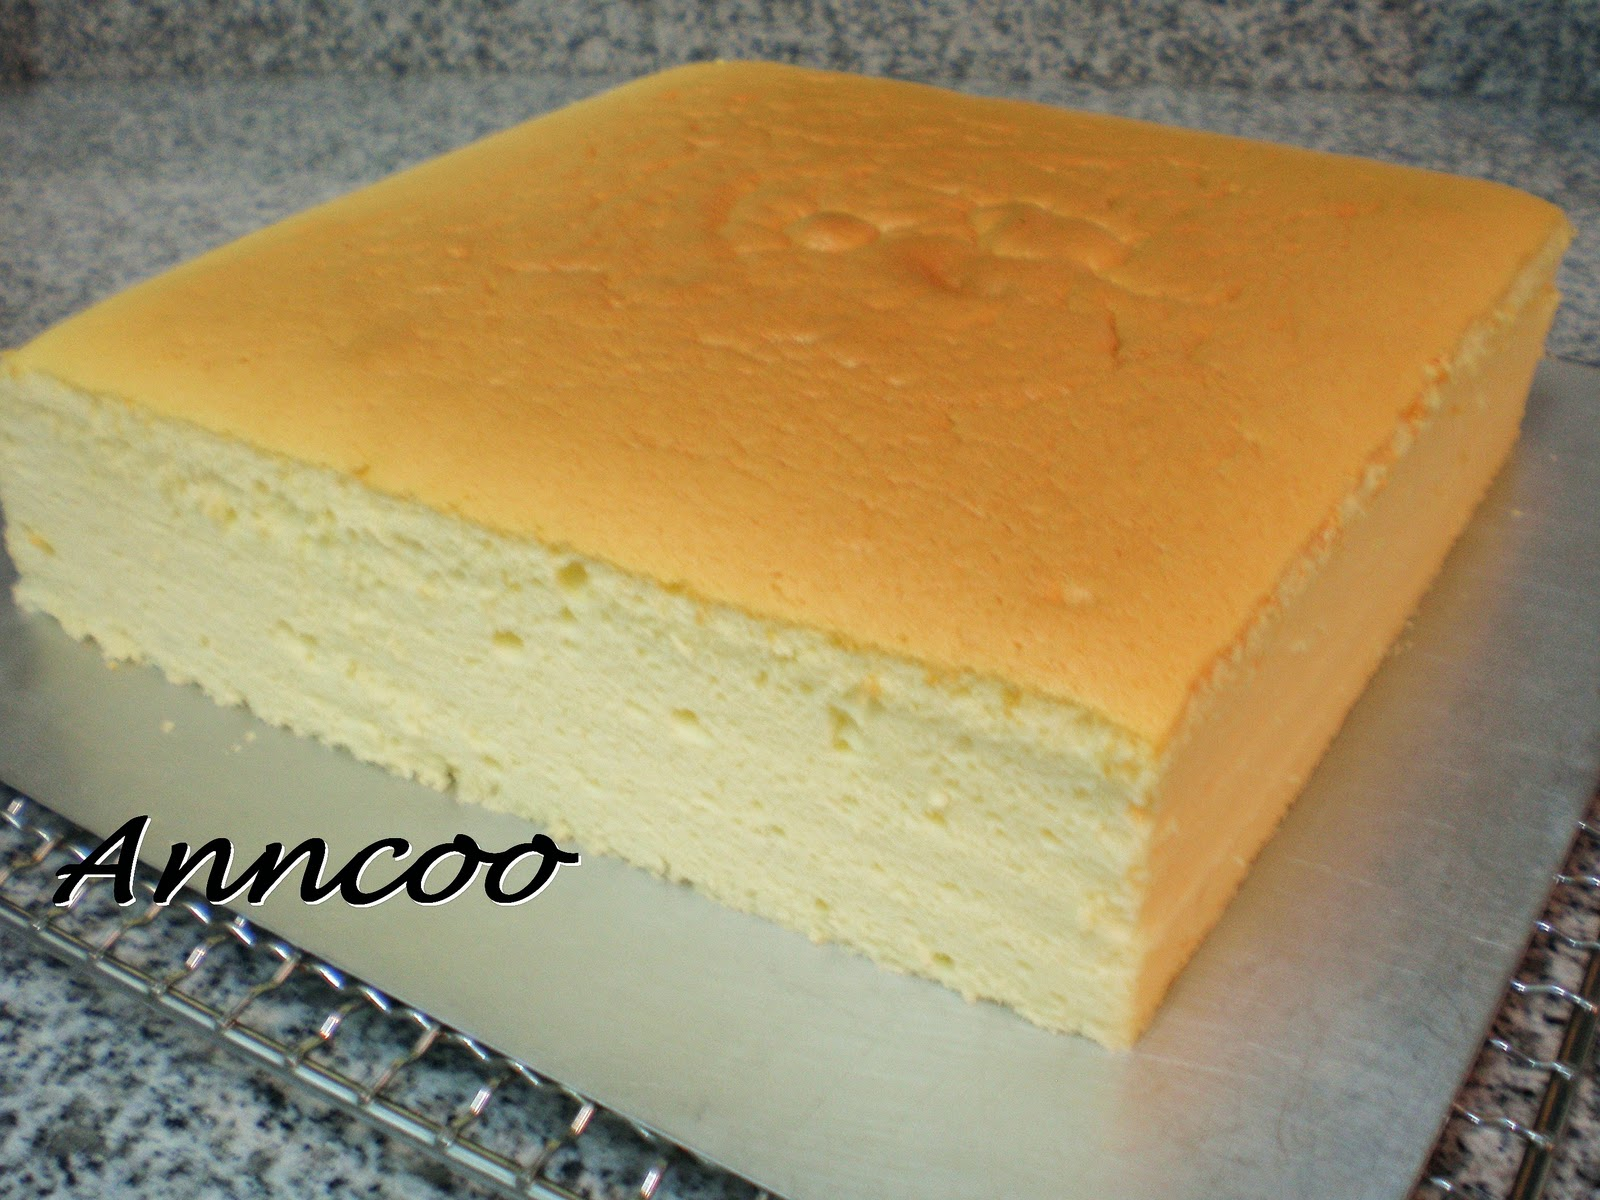 Anese Cotton Cheese Cake